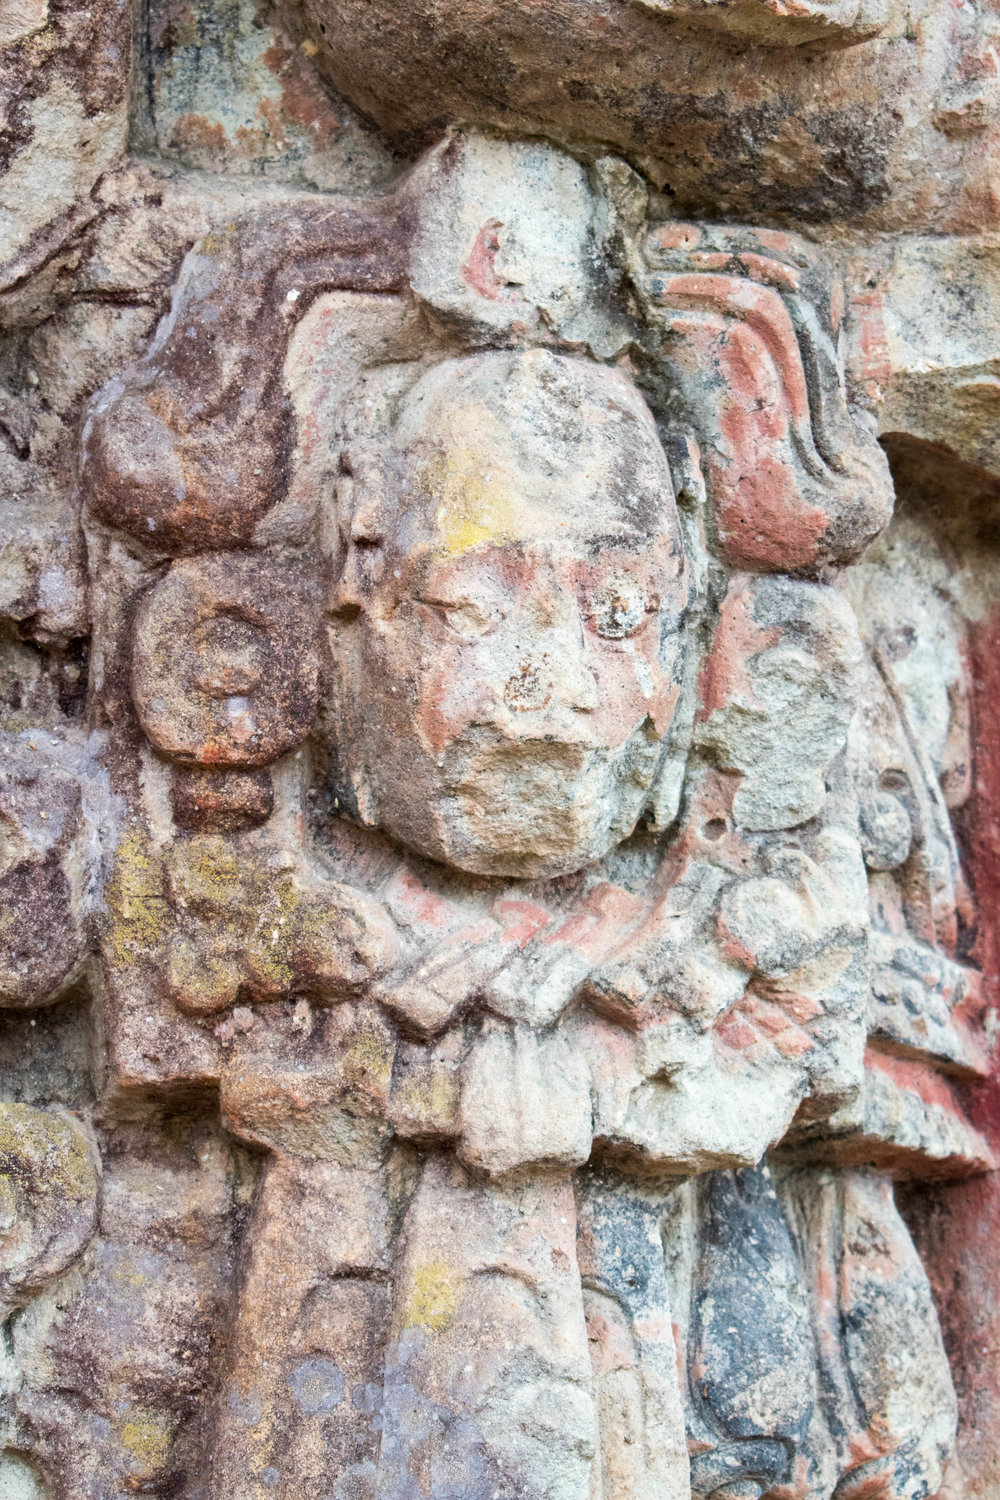 Colourful Ornately Decorated Stone Carvings in Copán, Honduras